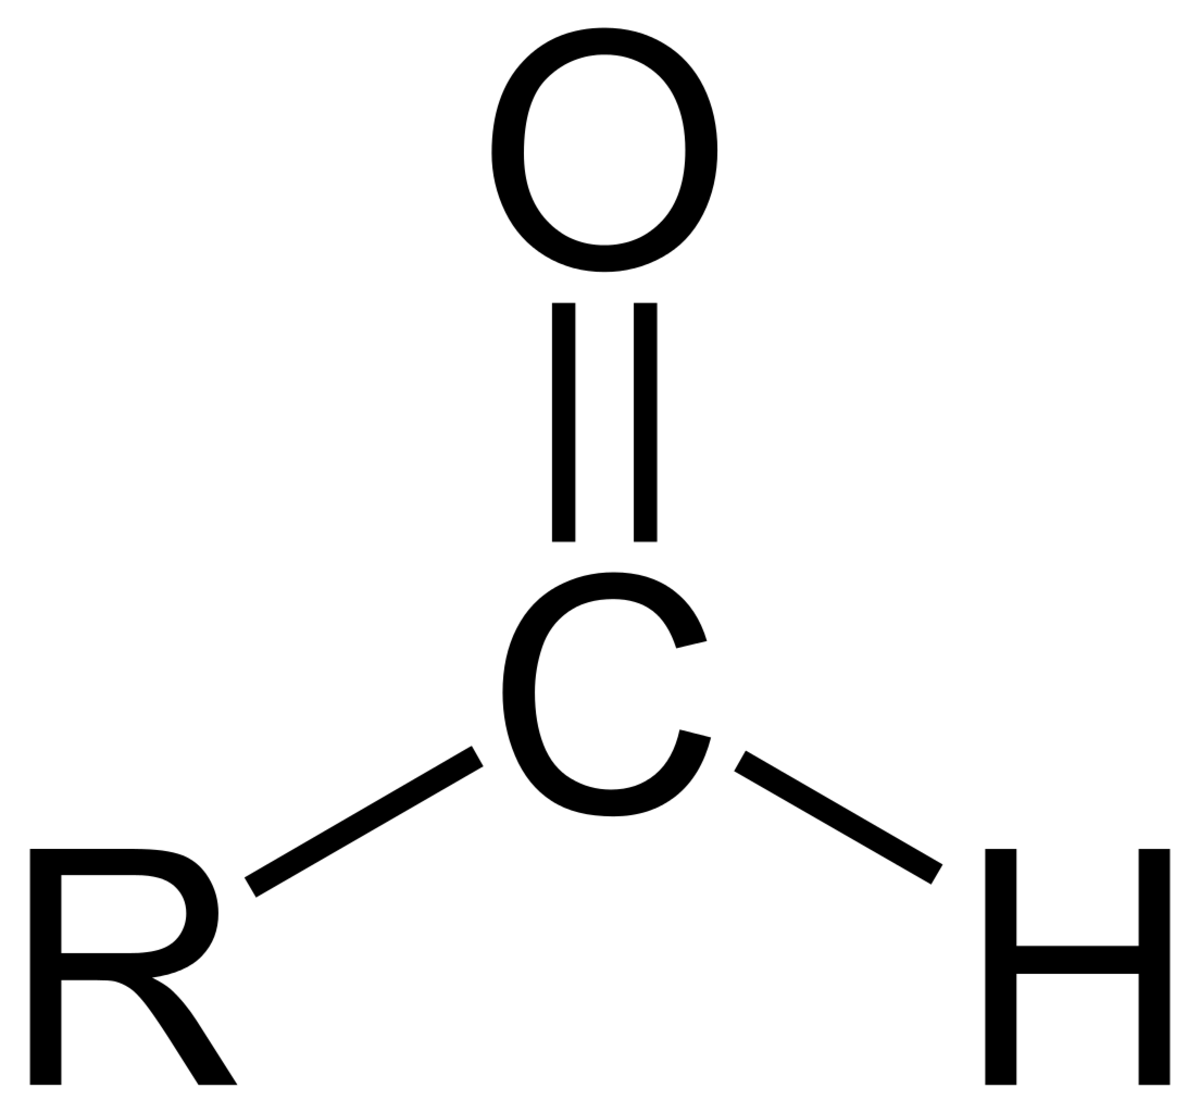 General formula of an aldehyde